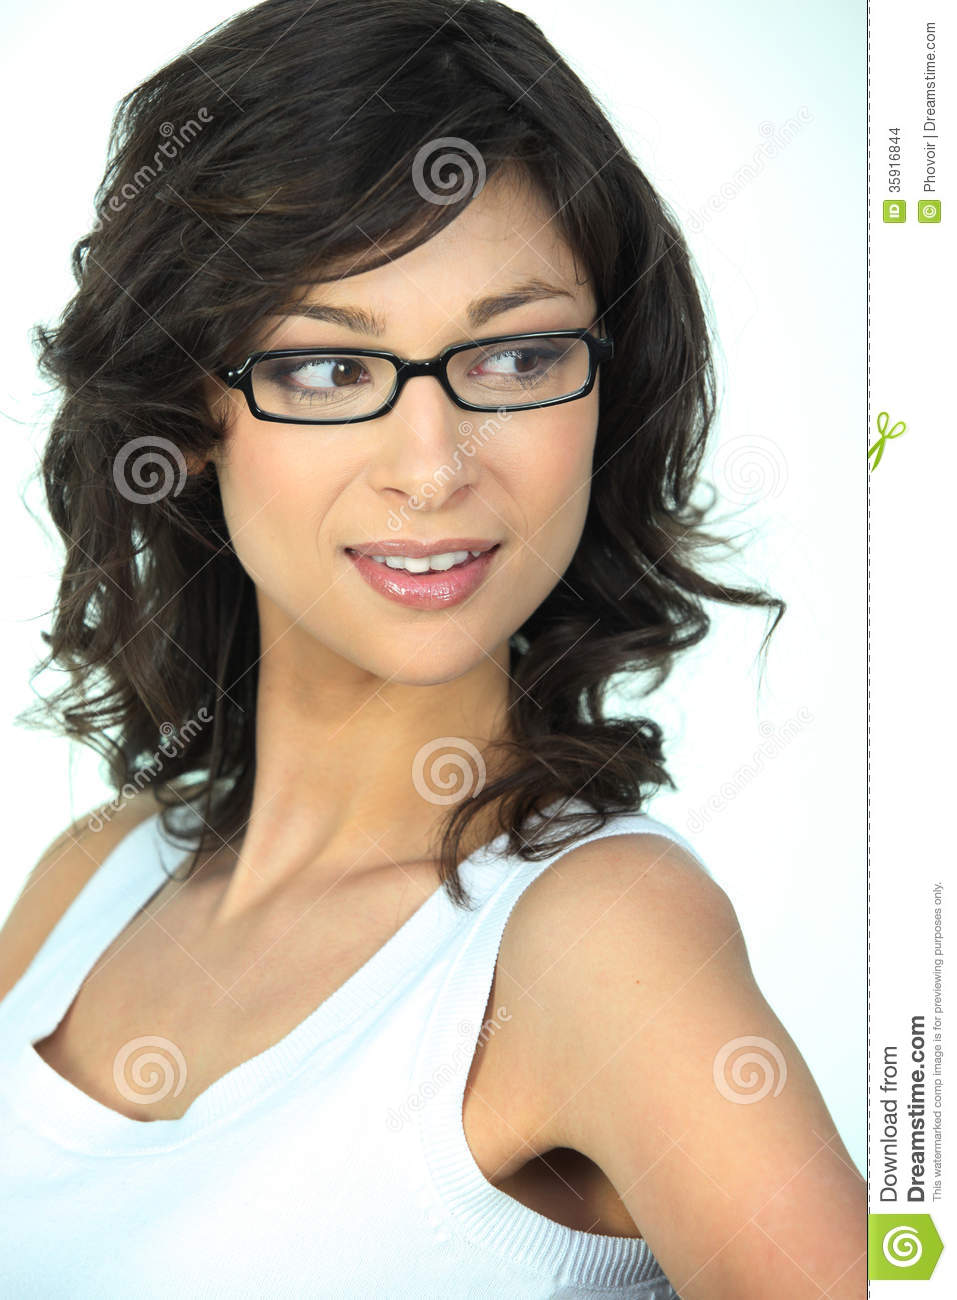 Cute brunette with glasses gets her